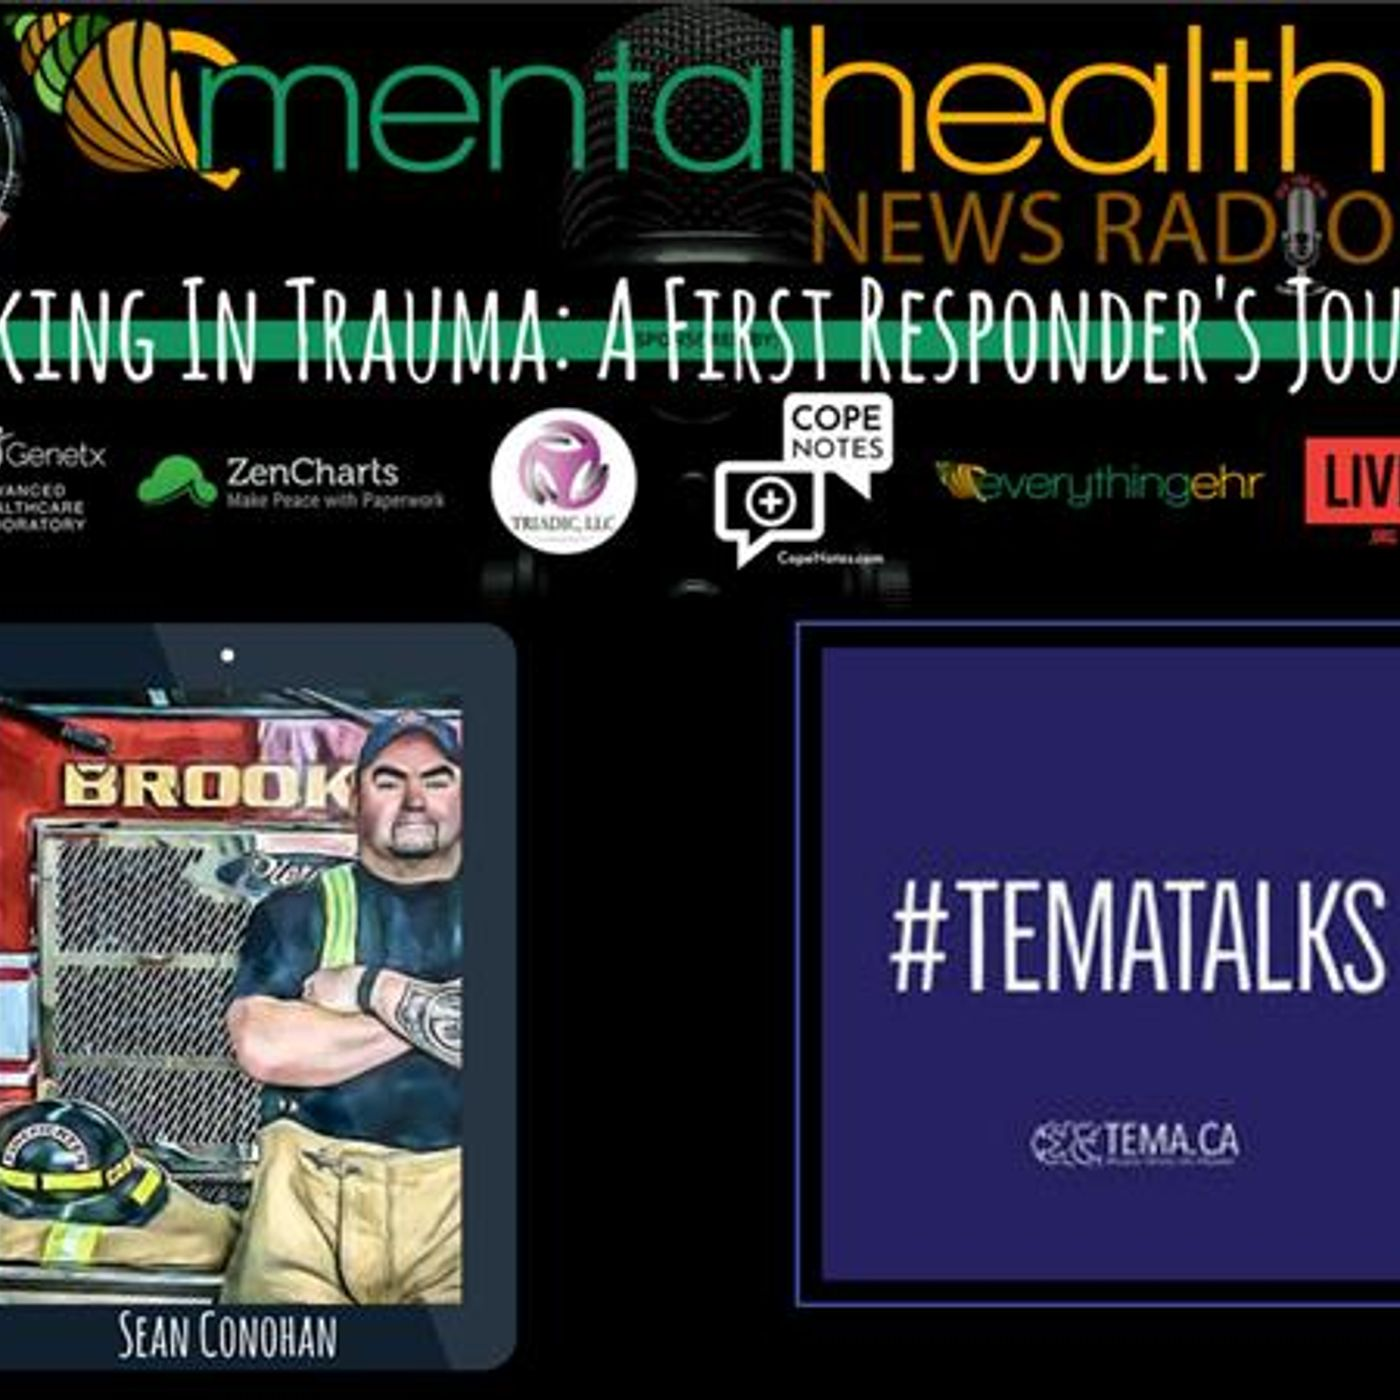 Mental Health News Radio - Working In Trauma: A First Responder's Journey with Sean Conohan